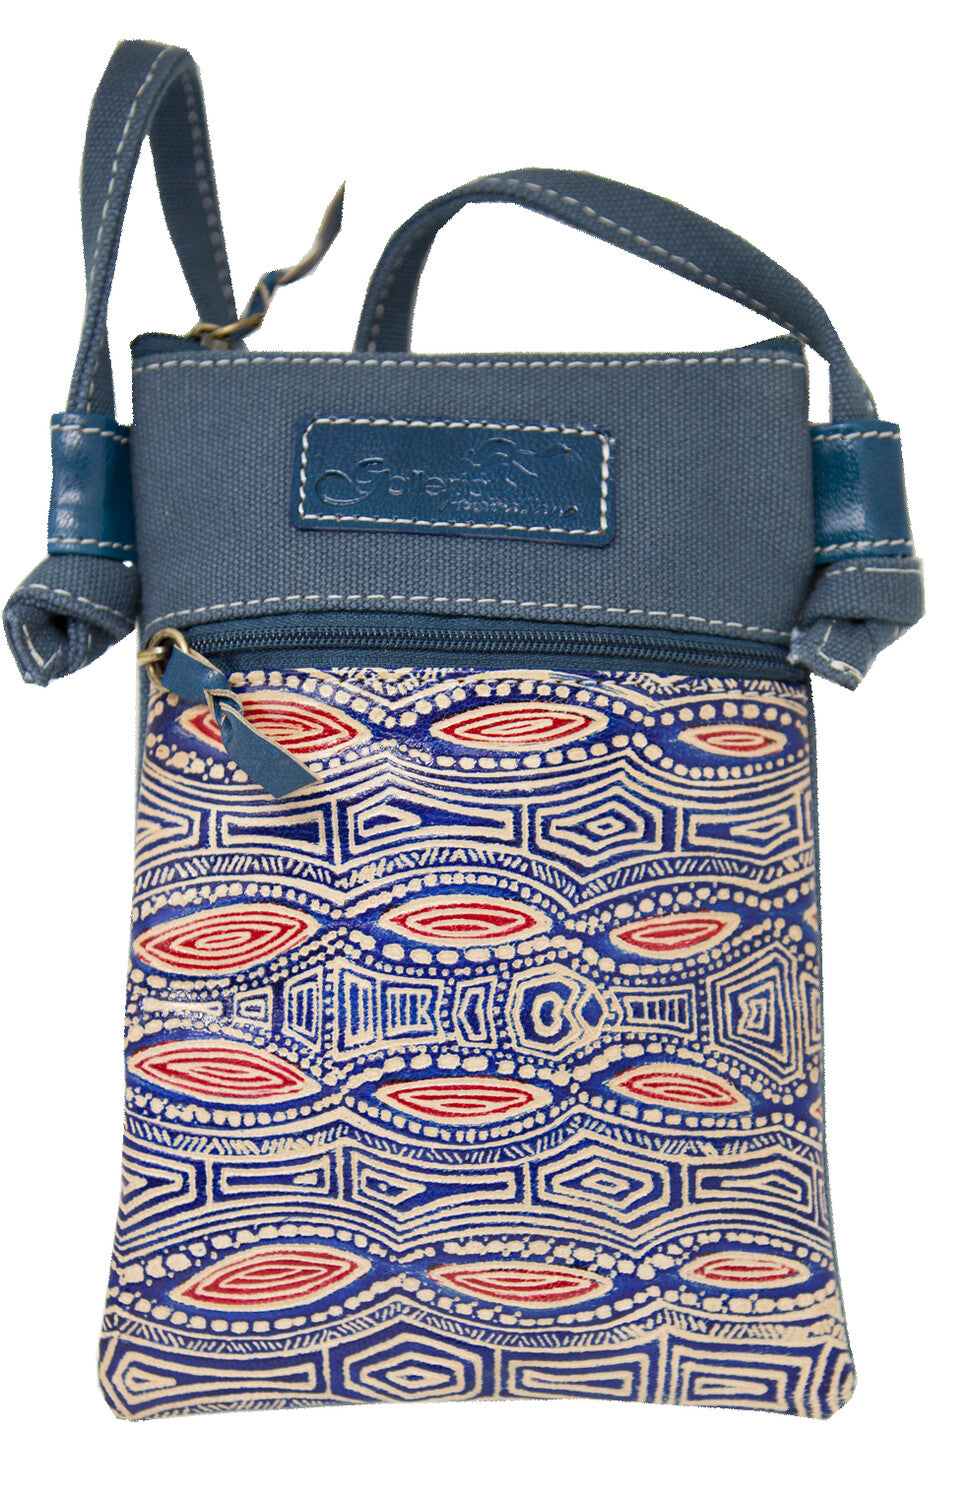 Australian indigenous Artist Billabong Kangaroo Yakinno Gunditjmara Dreaming Leather/Blue Canvas X Body Hippie Bag